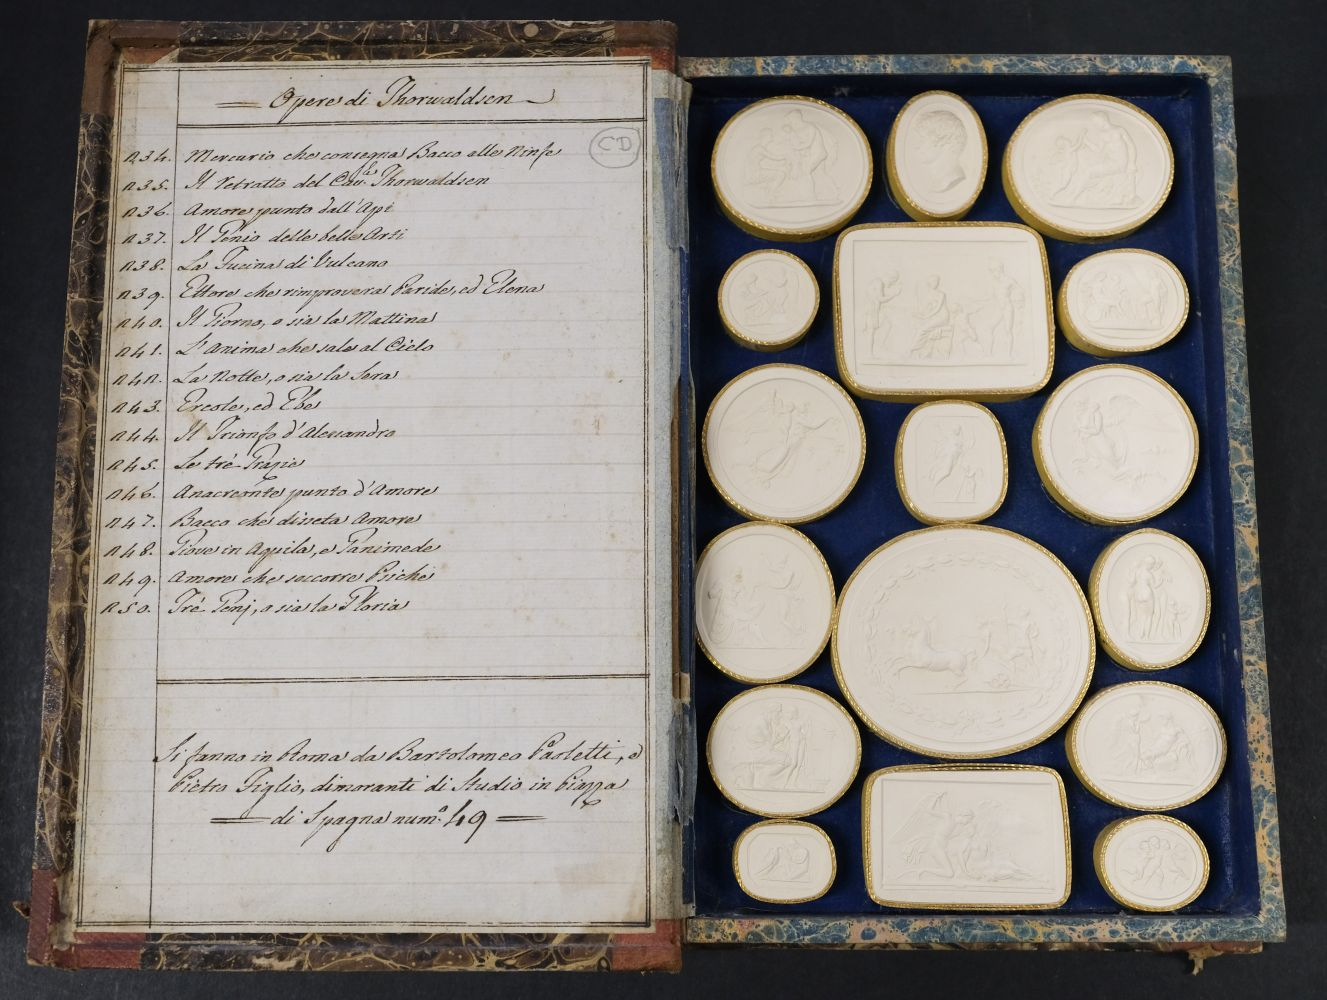 Paoletti (Bartolomeo and Pietro). A collection of 300 plaster cameos, 1820 - Image 14 of 16